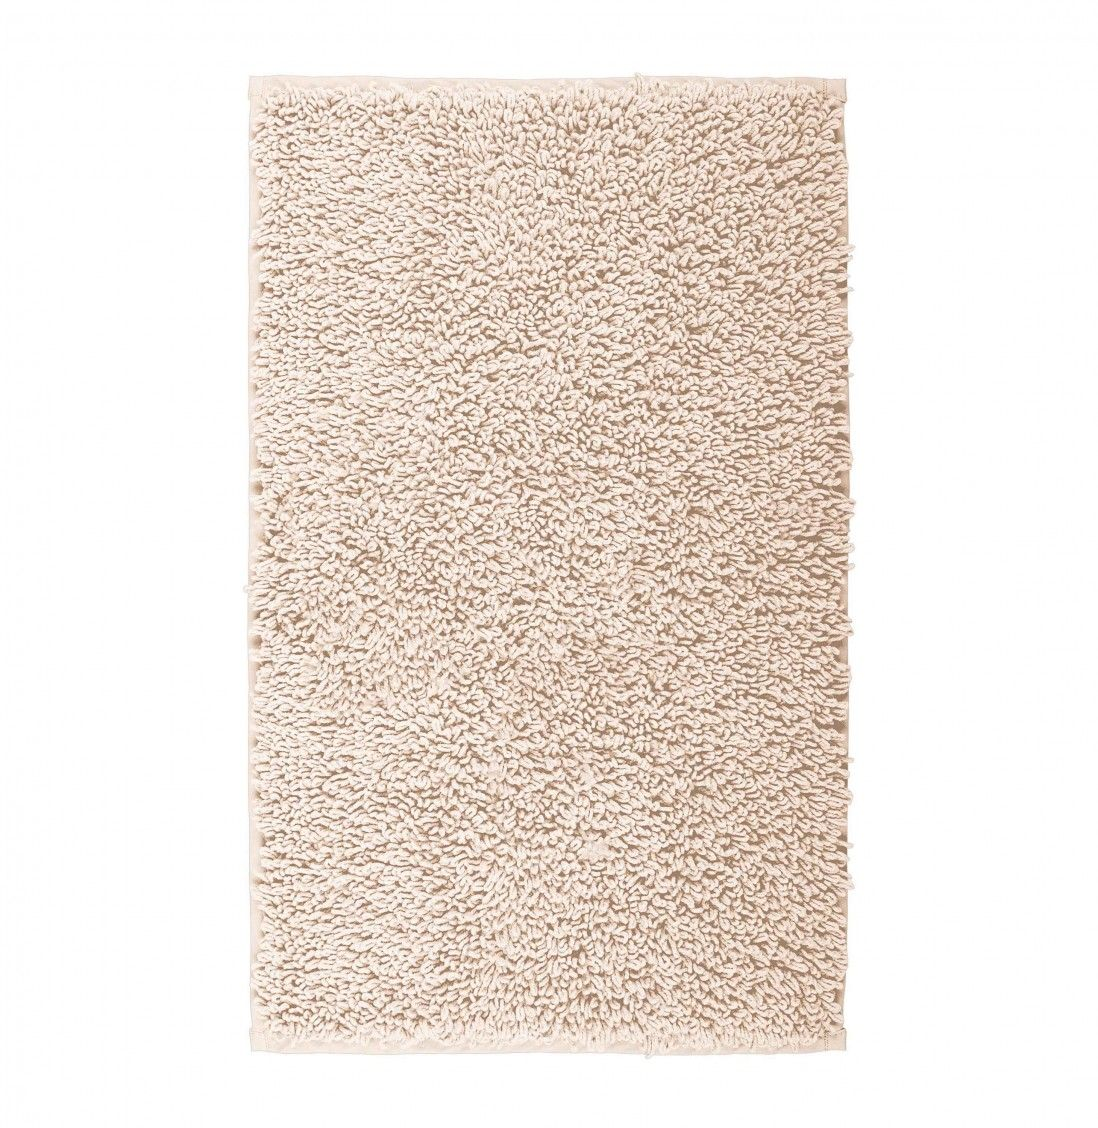 NEW PLUS TWIST BATH MAT 50x70 NATURAL